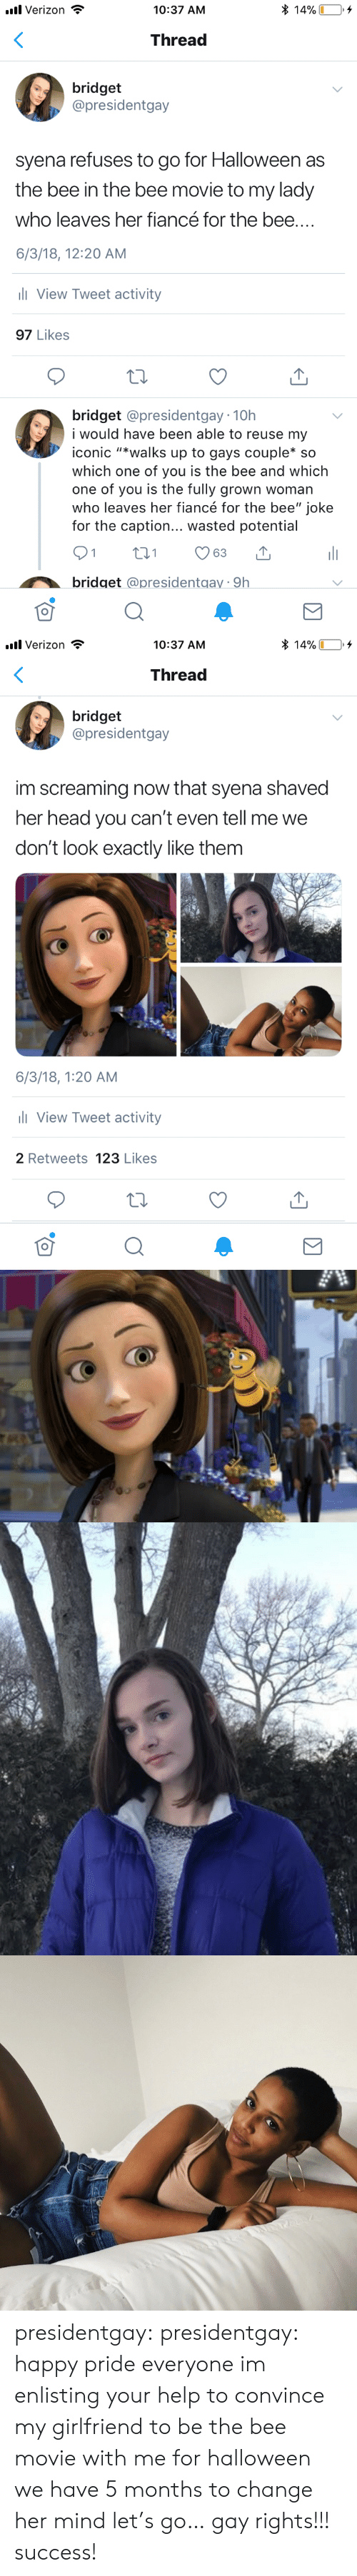 "which one: * 14%  l Verizon  10:37 AM  Thread  bridget  @presidentgay  syena refuses to go for Halloween as  the bee in the bee movie to my lady  who leaves her fiancé for the bee....  6/3/18, 12:20 AM  ll View Tweet activity  97 Likes  bridget @presidentgay 10h  i would have be  able to reuse my  iconic ""*walks up to gays couple* so  which one of you is the bee and which  one of you is the fully grown woman  who leaves her fiancé for the bee"" joke  for the caption... wasted potential  21  t1  63  bridget @presidentgay 9h   l Verizon  * 14%  10:37 AM  Thread  bridget  @presidentgay  im screaming now that syena shaved  her head you can't even tell me we  don't look exactly like them  6/3/18, 1:20 AM  l View Tweet activity  2 Retweets 123 Likes presidentgay:  presidentgay: happy pride everyone im enlisting your help to convince my girlfriend to be the bee movie with me for halloween we have 5 months to change her mind let's go… gay rights!!! success!"